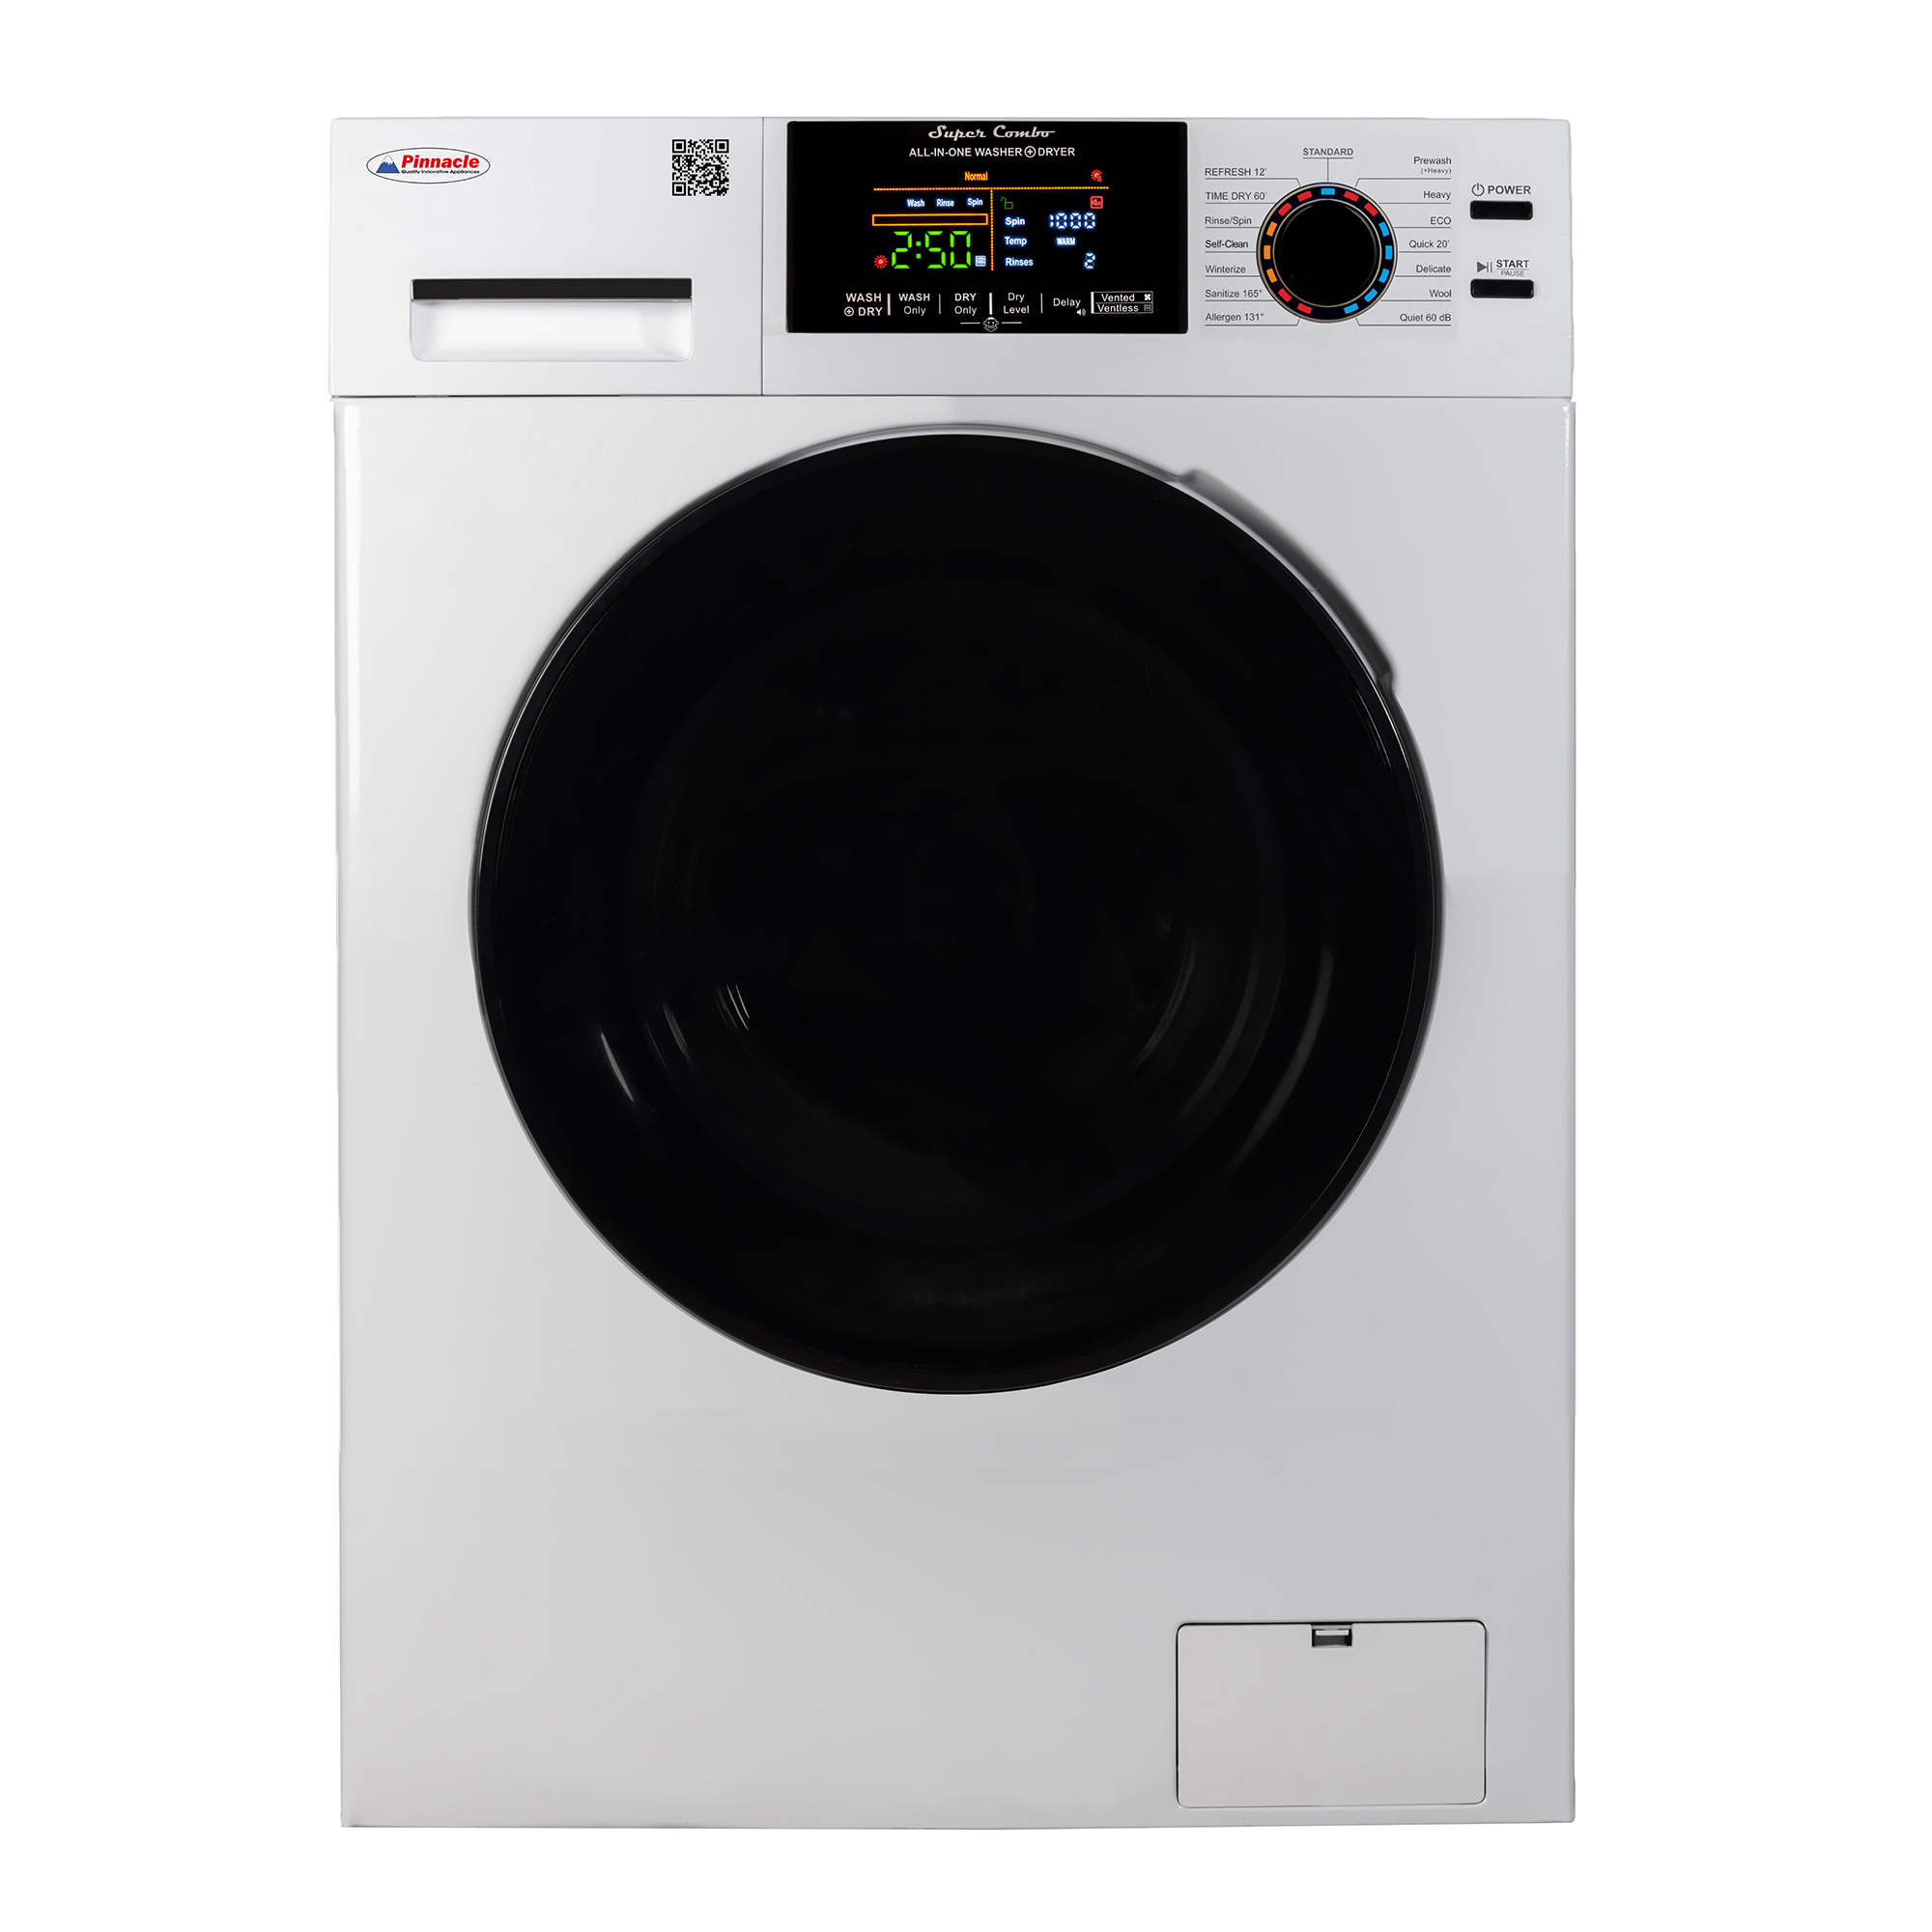 Pinnacle Super Combo Washer-Dryer White 18-5500 CV